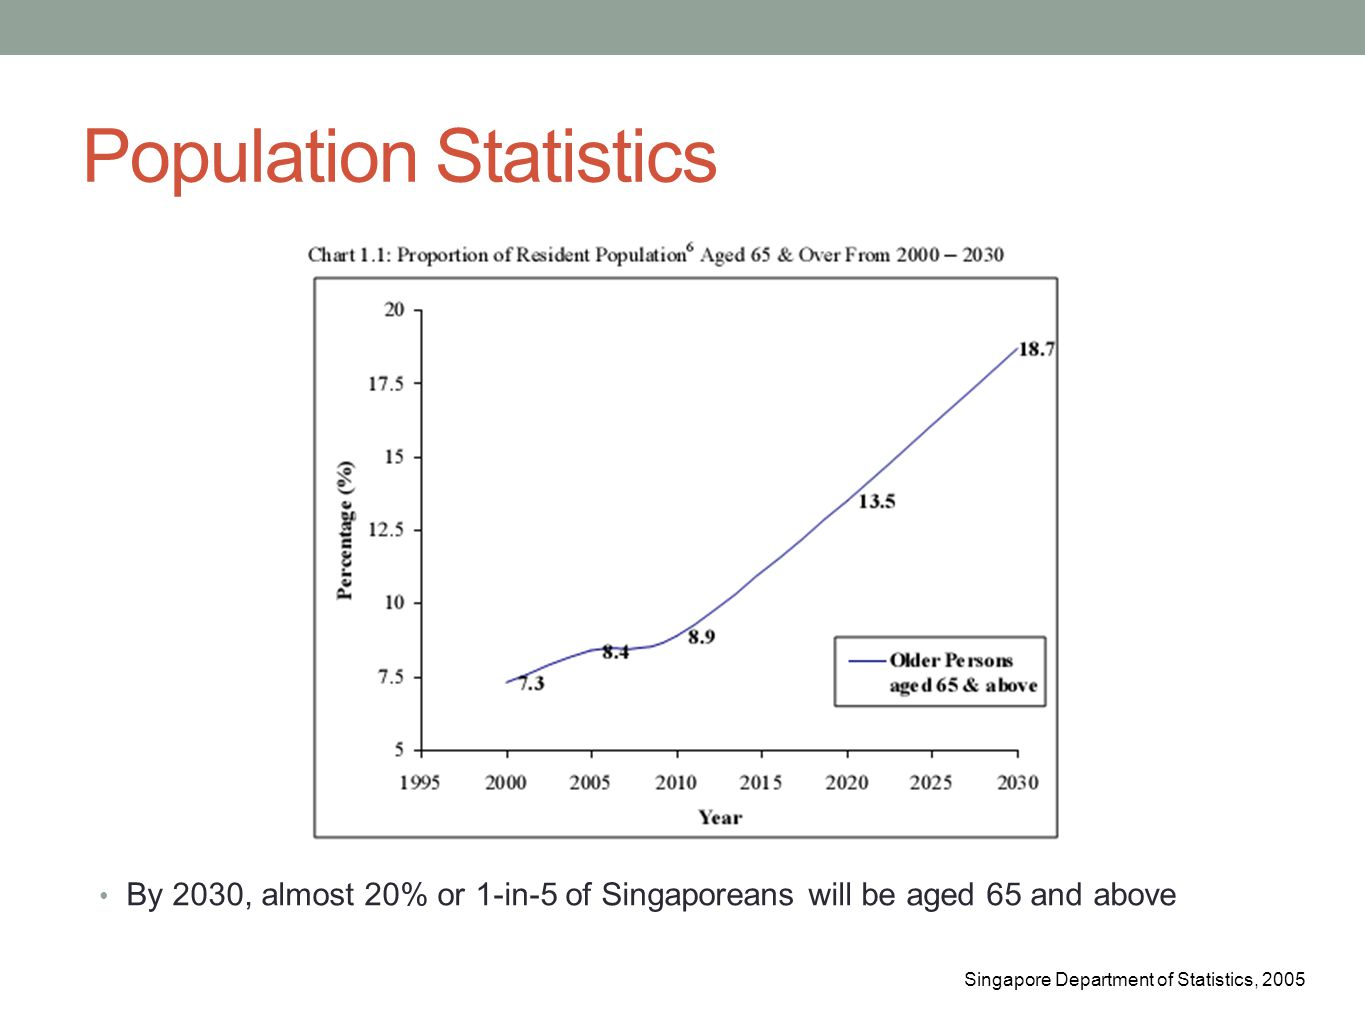 Population Statistics Source of Chart: Role of the Government in Healthcare Provision and Financing in Singapore, presented by Mr Edward Reiche